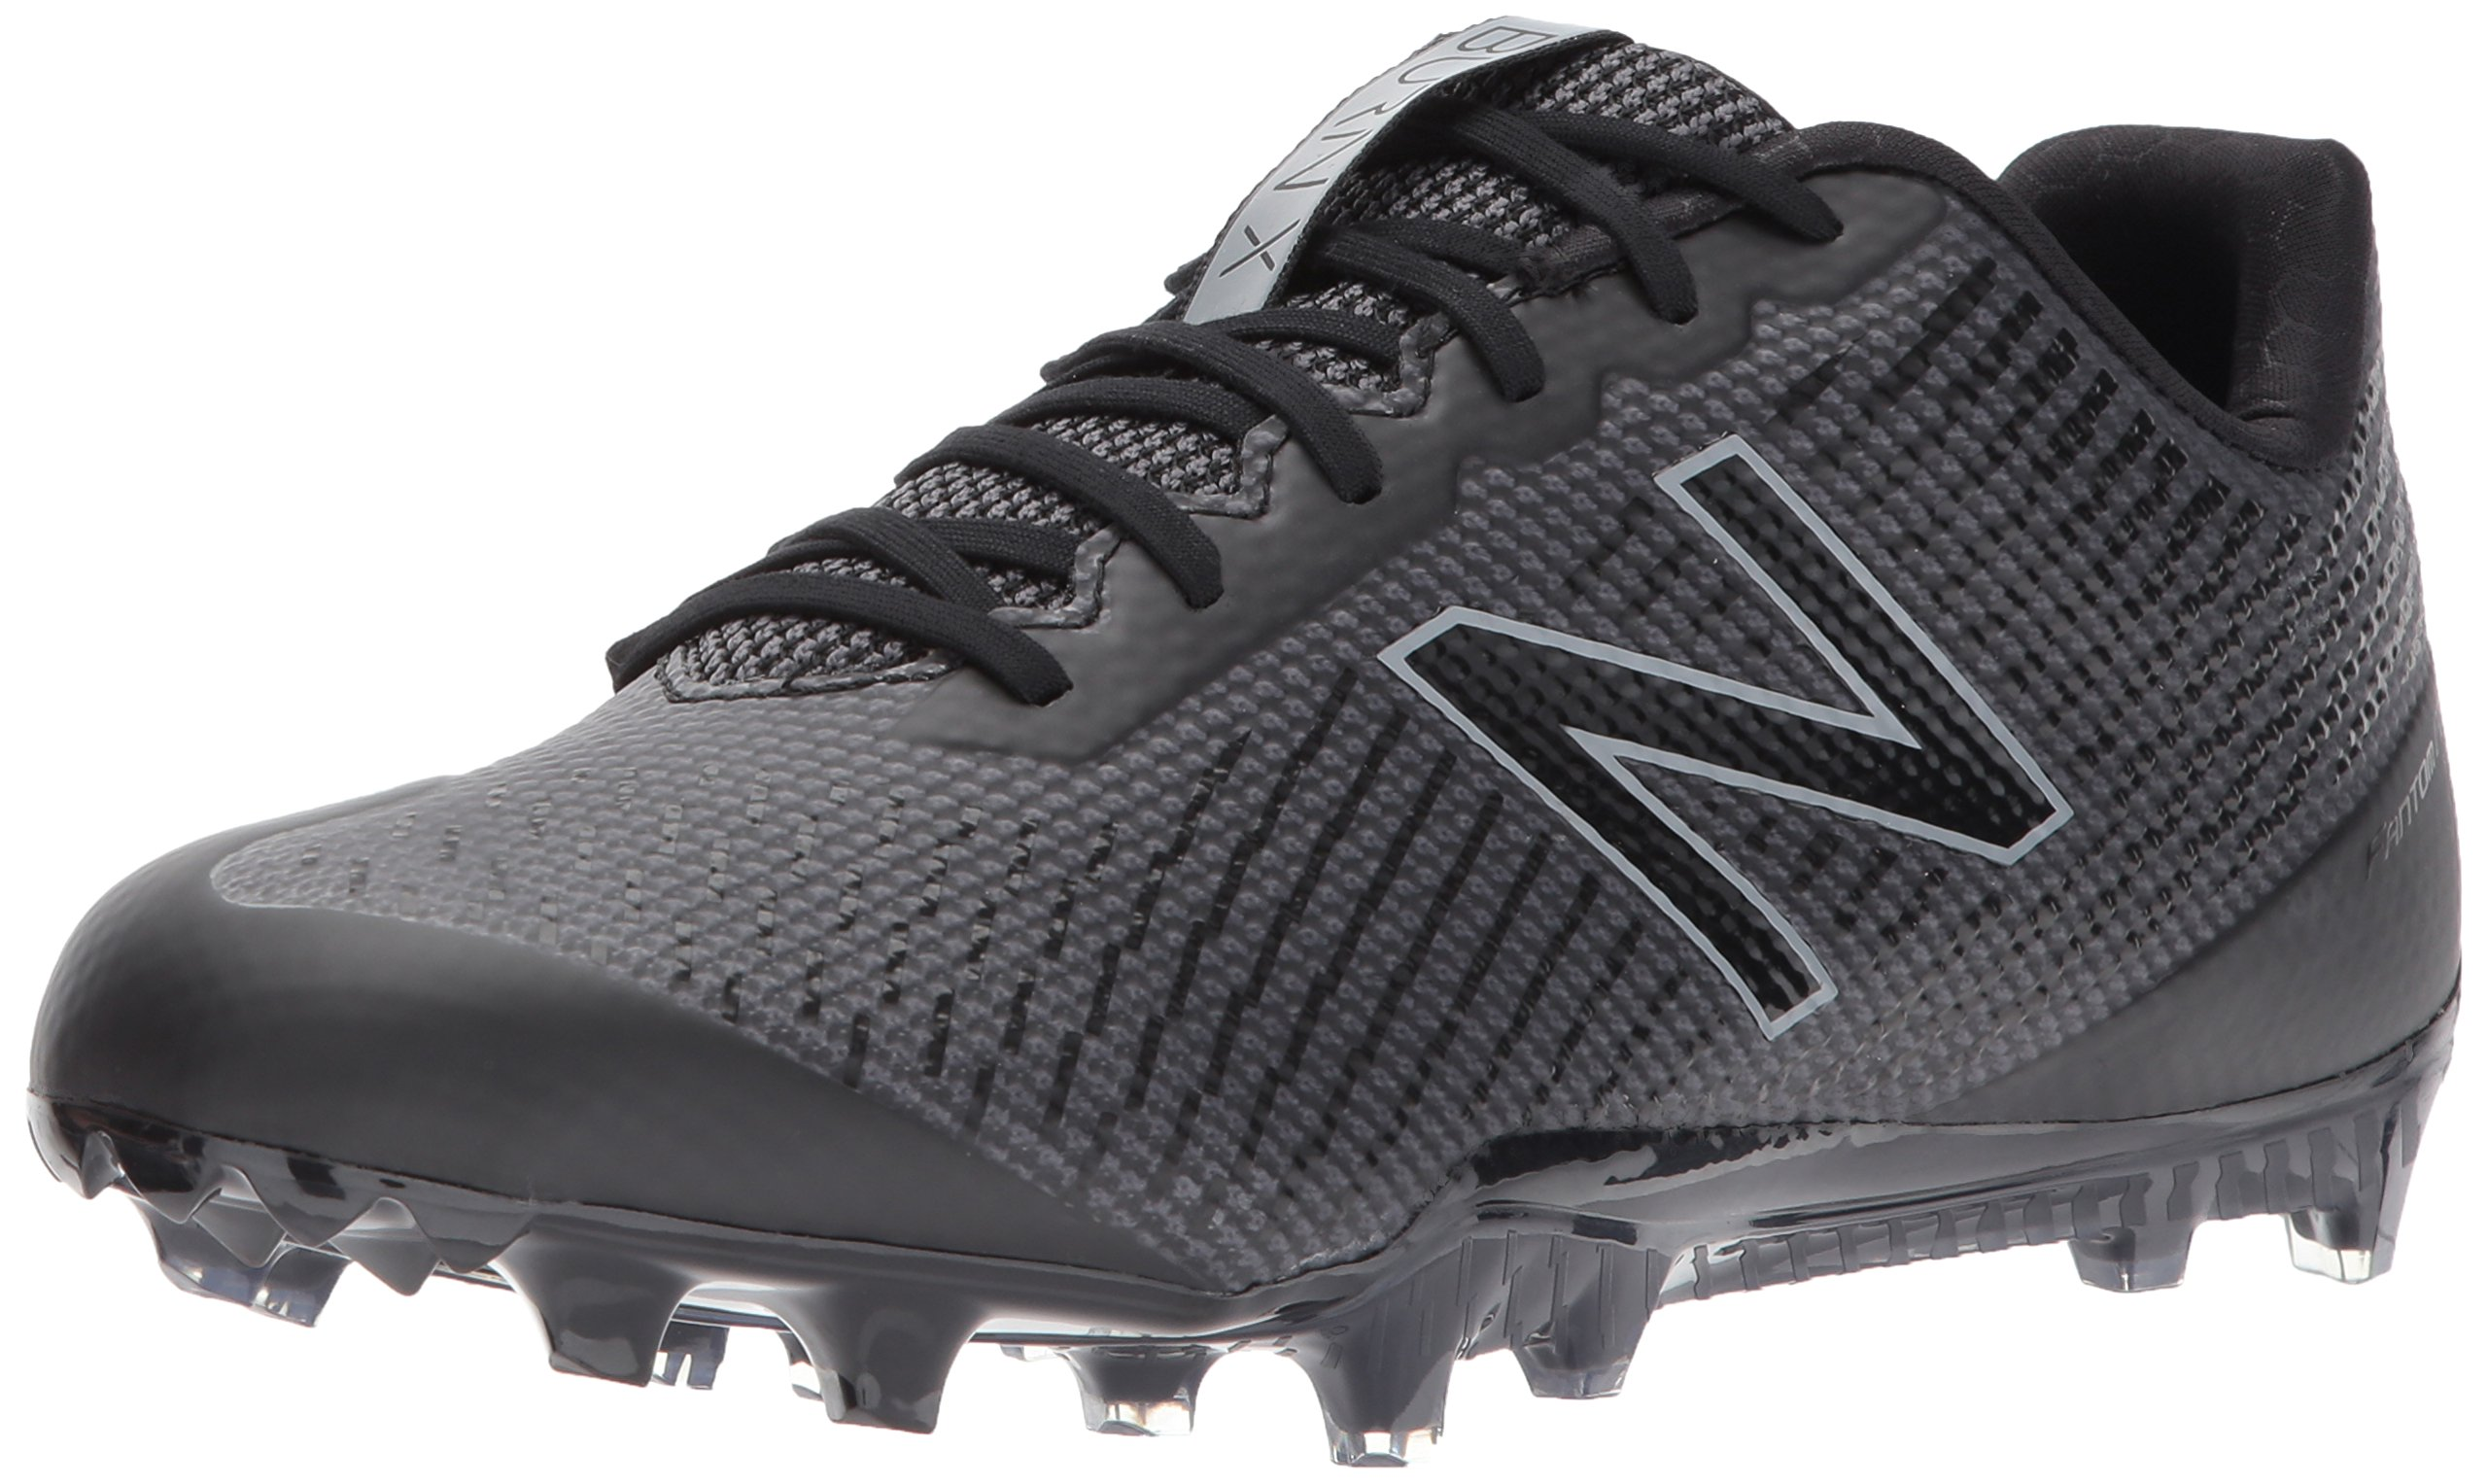 New Balance Men's Burn Low Speed Lacrosse Shoe, Black, 13 D US by New Balance